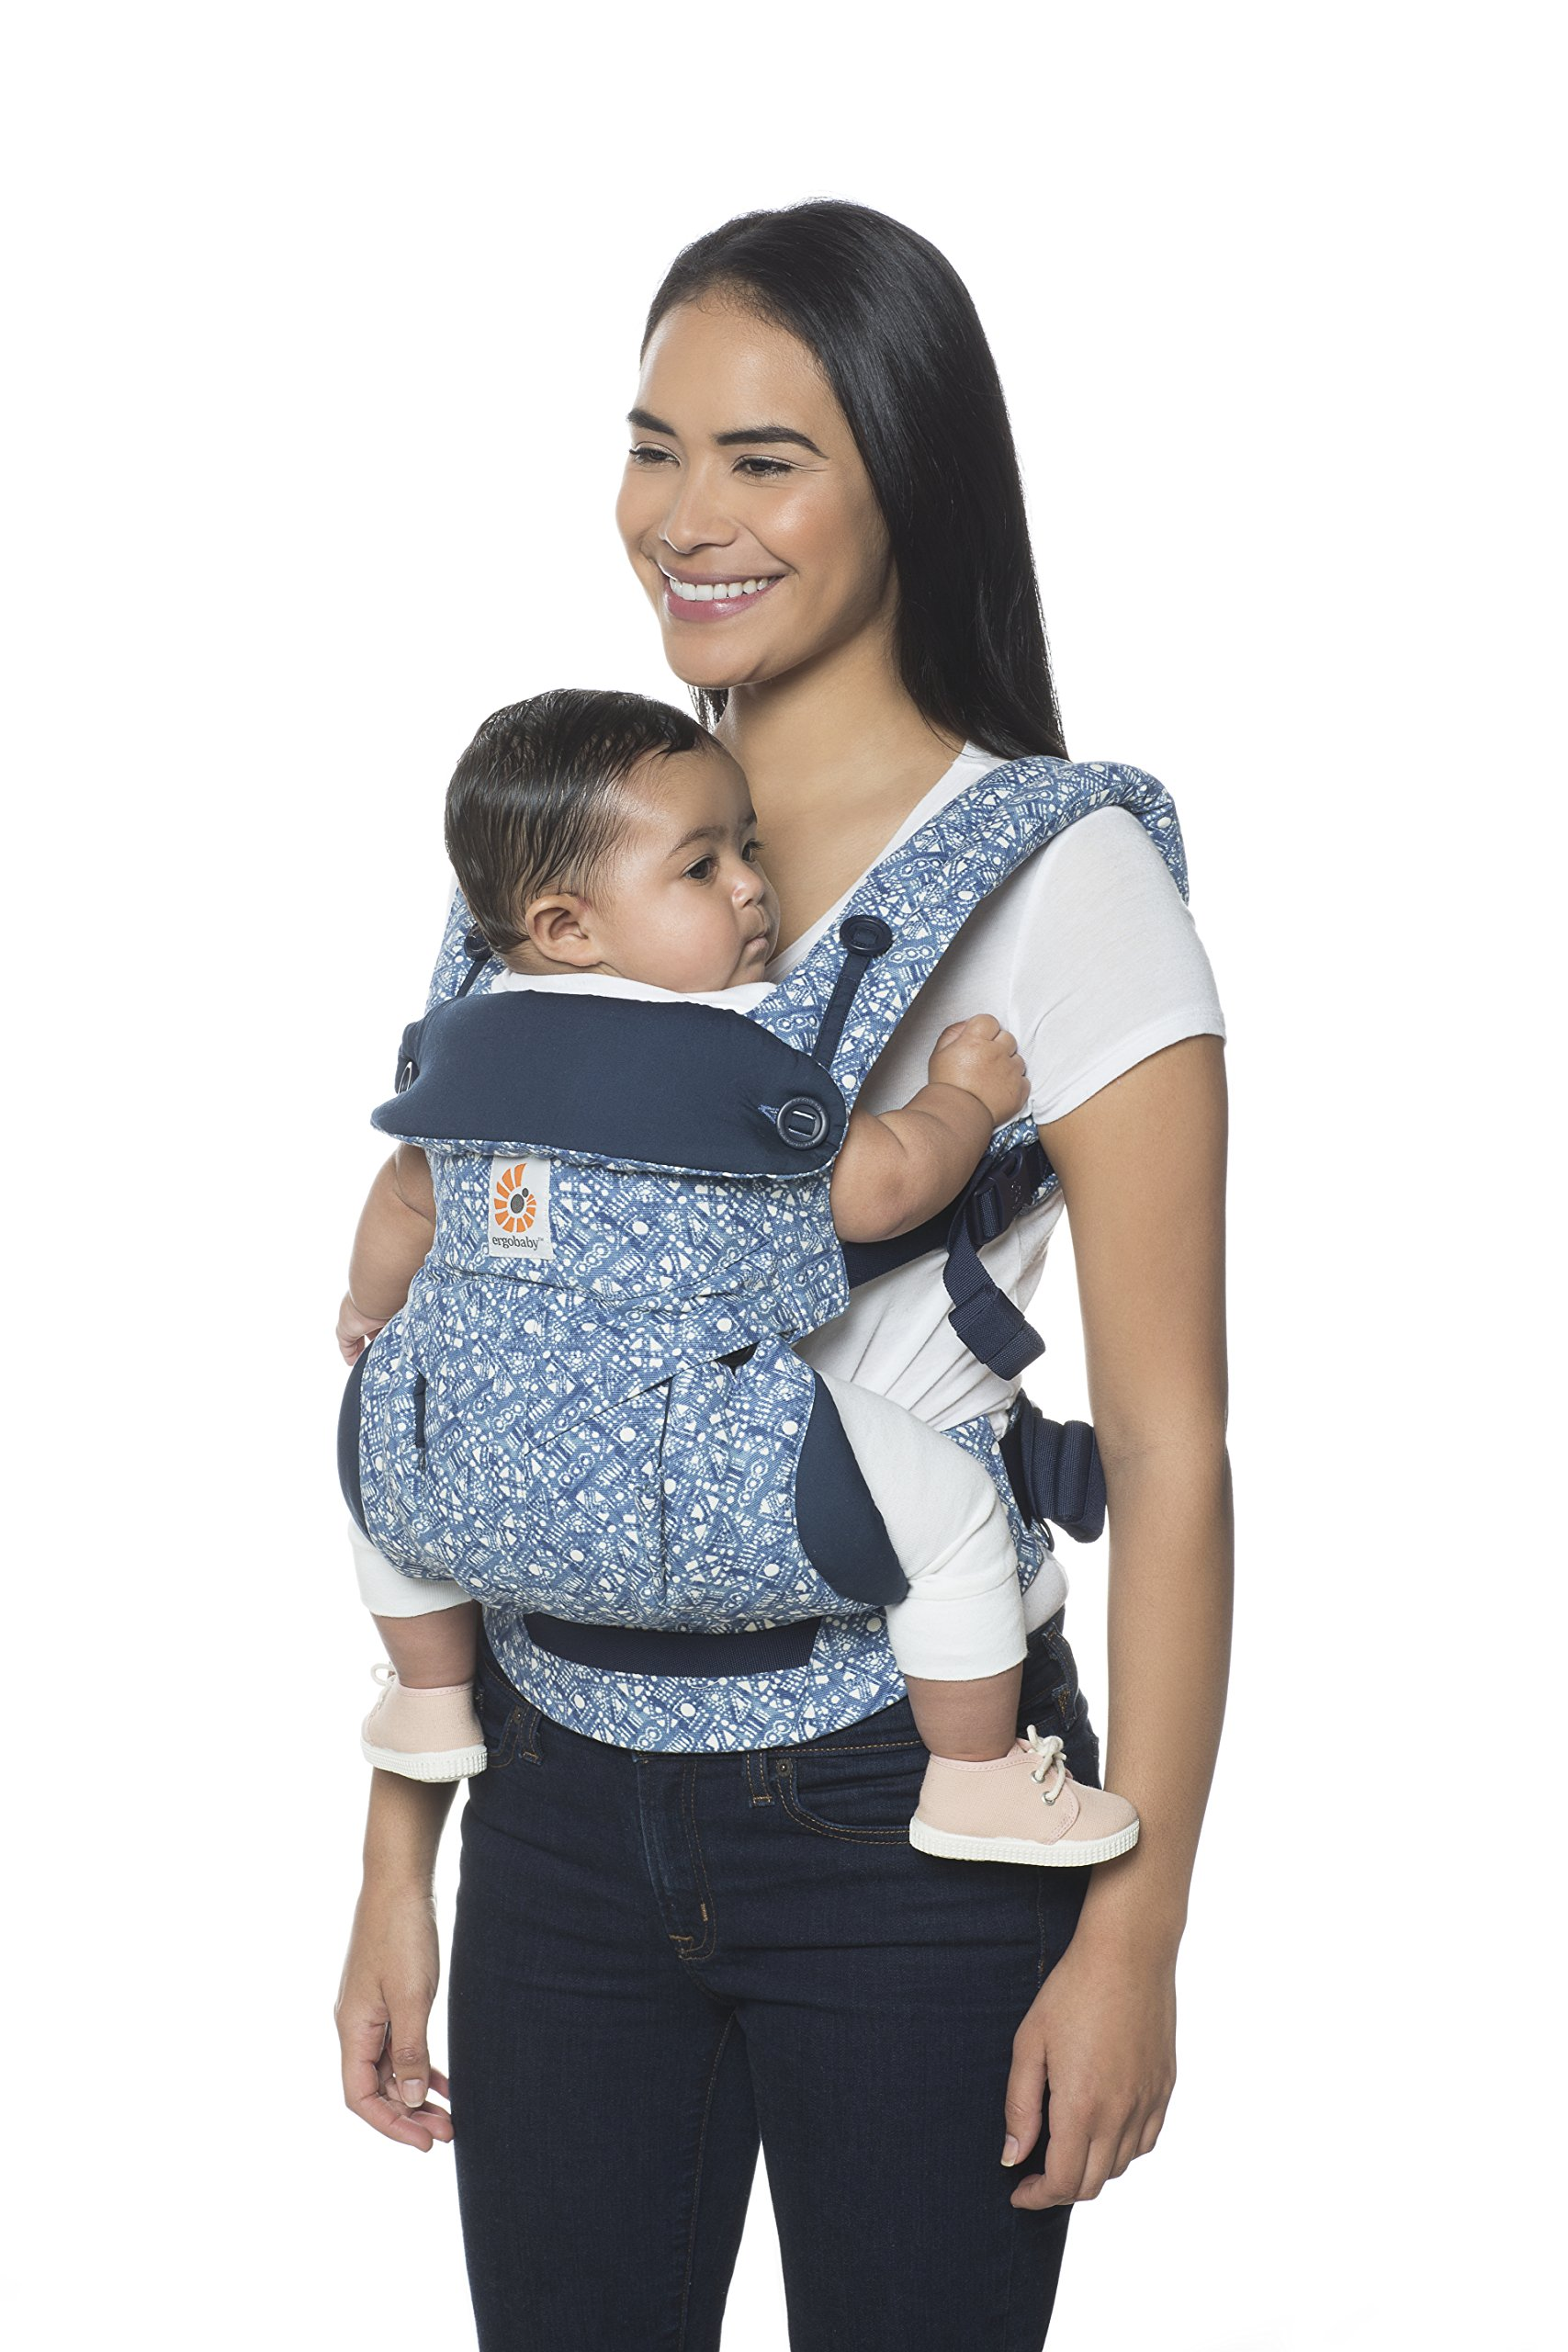 Ergobaby Baby Carrier 6 month plus 360 Limited Edition Batik Indigo, 4 Ergonomic Carry Positions, Front Facing Baby Carrier, Backpack Ergobaby Ergonomic baby carrier with 4 ergonomic carry positions: front-inward, back, hip, and front-outward. The carrier is suitable for babies and toddlers weighing 5.5-20 kg (12-45 lbs), and can be used as a back carrier. Also with insert for newborn babies weighing 3.2-5.5 kg (7-12 lbs), sold separately. NEW - The waistbelt with lumbar support can be worn a little higher or lower to support the lower back and provide optimal comfort, and has adjustable padded shoulder straps. The carrier is suitable for men and women. Maximum baby comfort - The structured bucket seat supports the correct frog-leg position for the baby. The carrier also has a padded, foldable head and neck support. Ergobaby carriers are a new take on the usual baby sling. 7